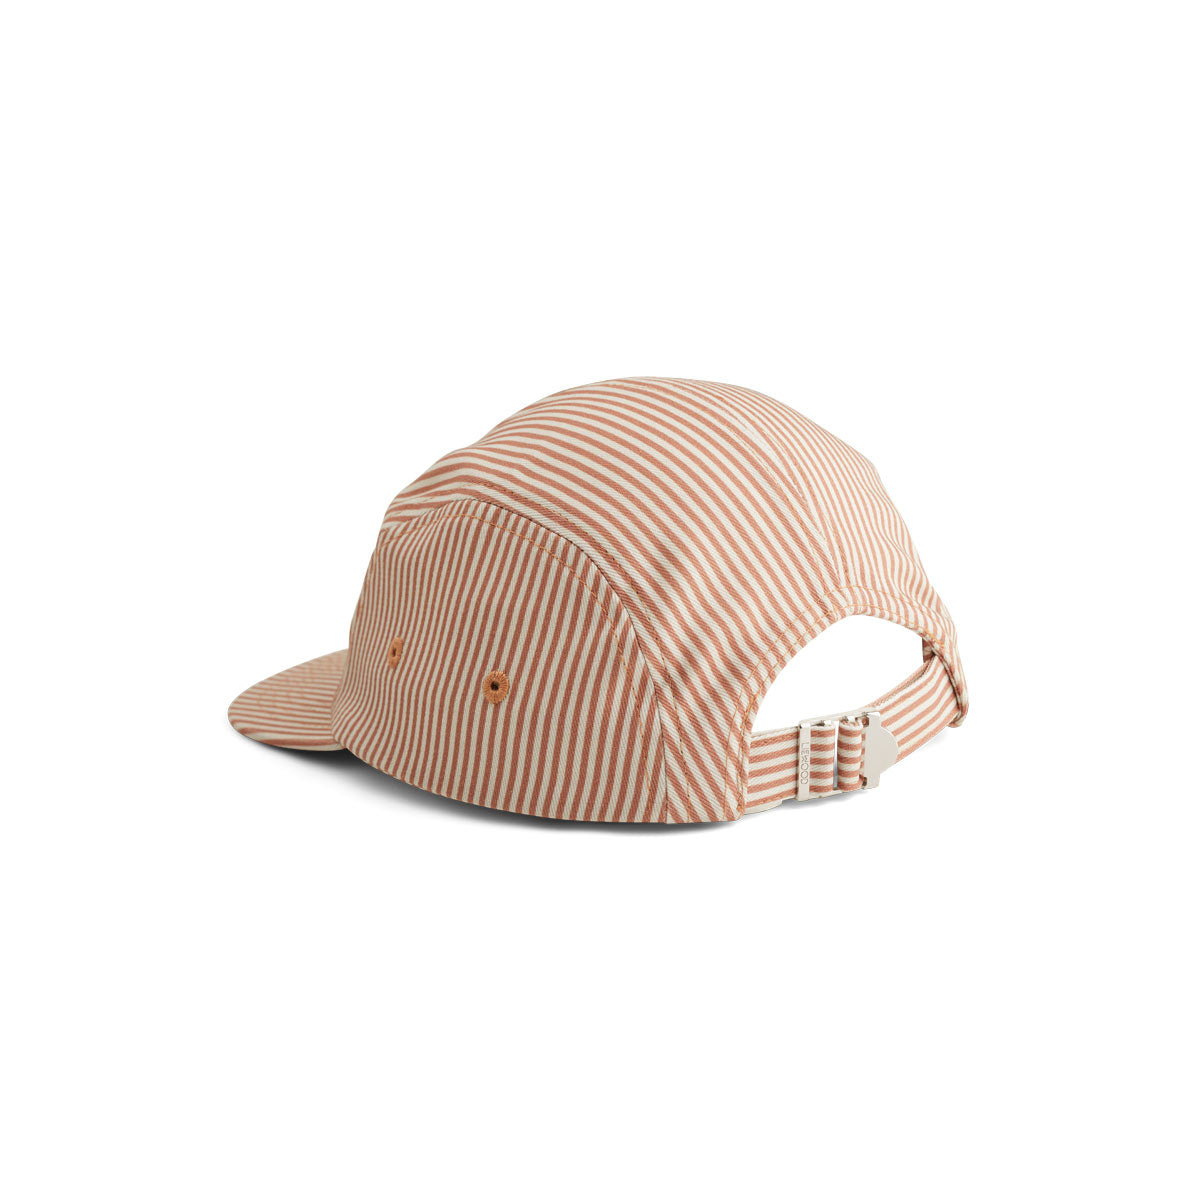 Rory Cap - Stripe: Tuscany rose/sandy